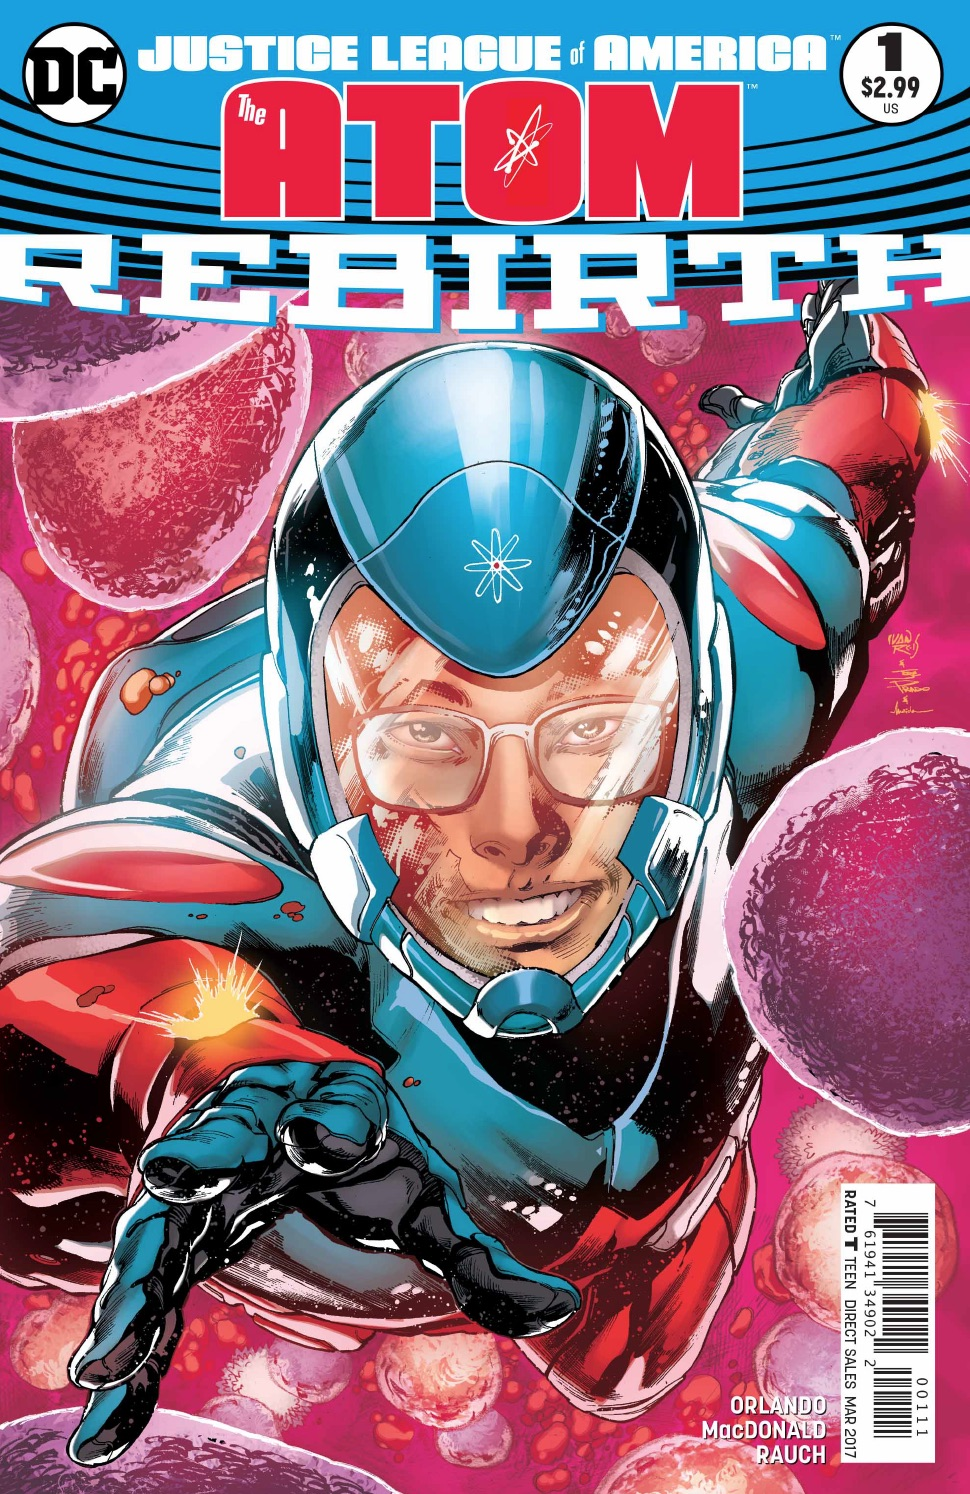 Justice League of America: The Atom Rebirth #1 Review